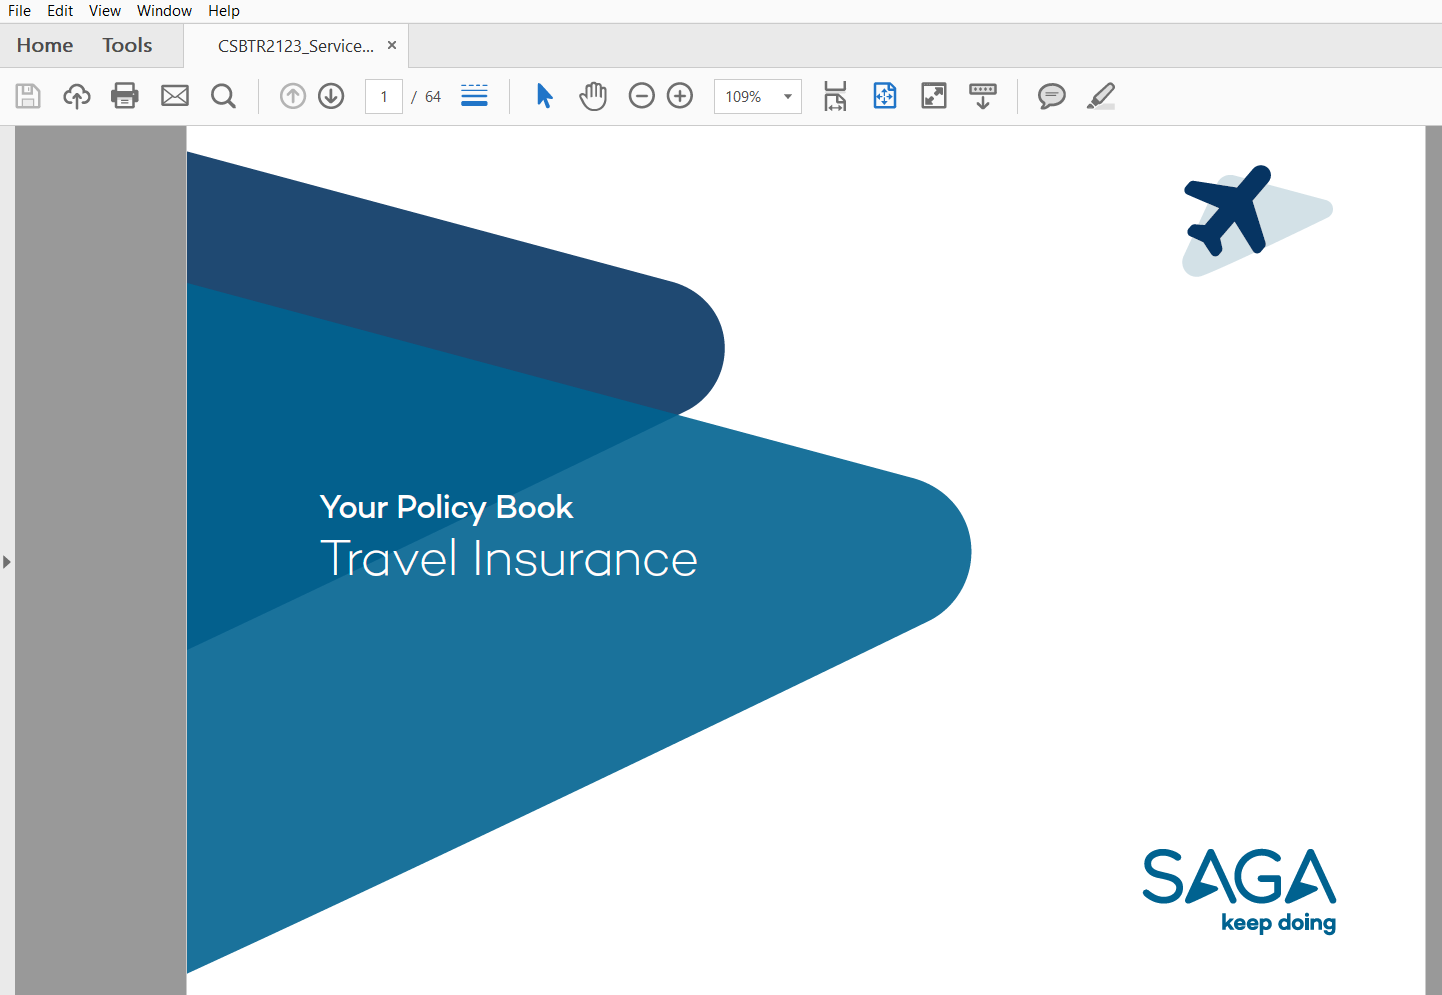 SAGA-Travel-Insurance-image-5 | AardvarkCompare.com